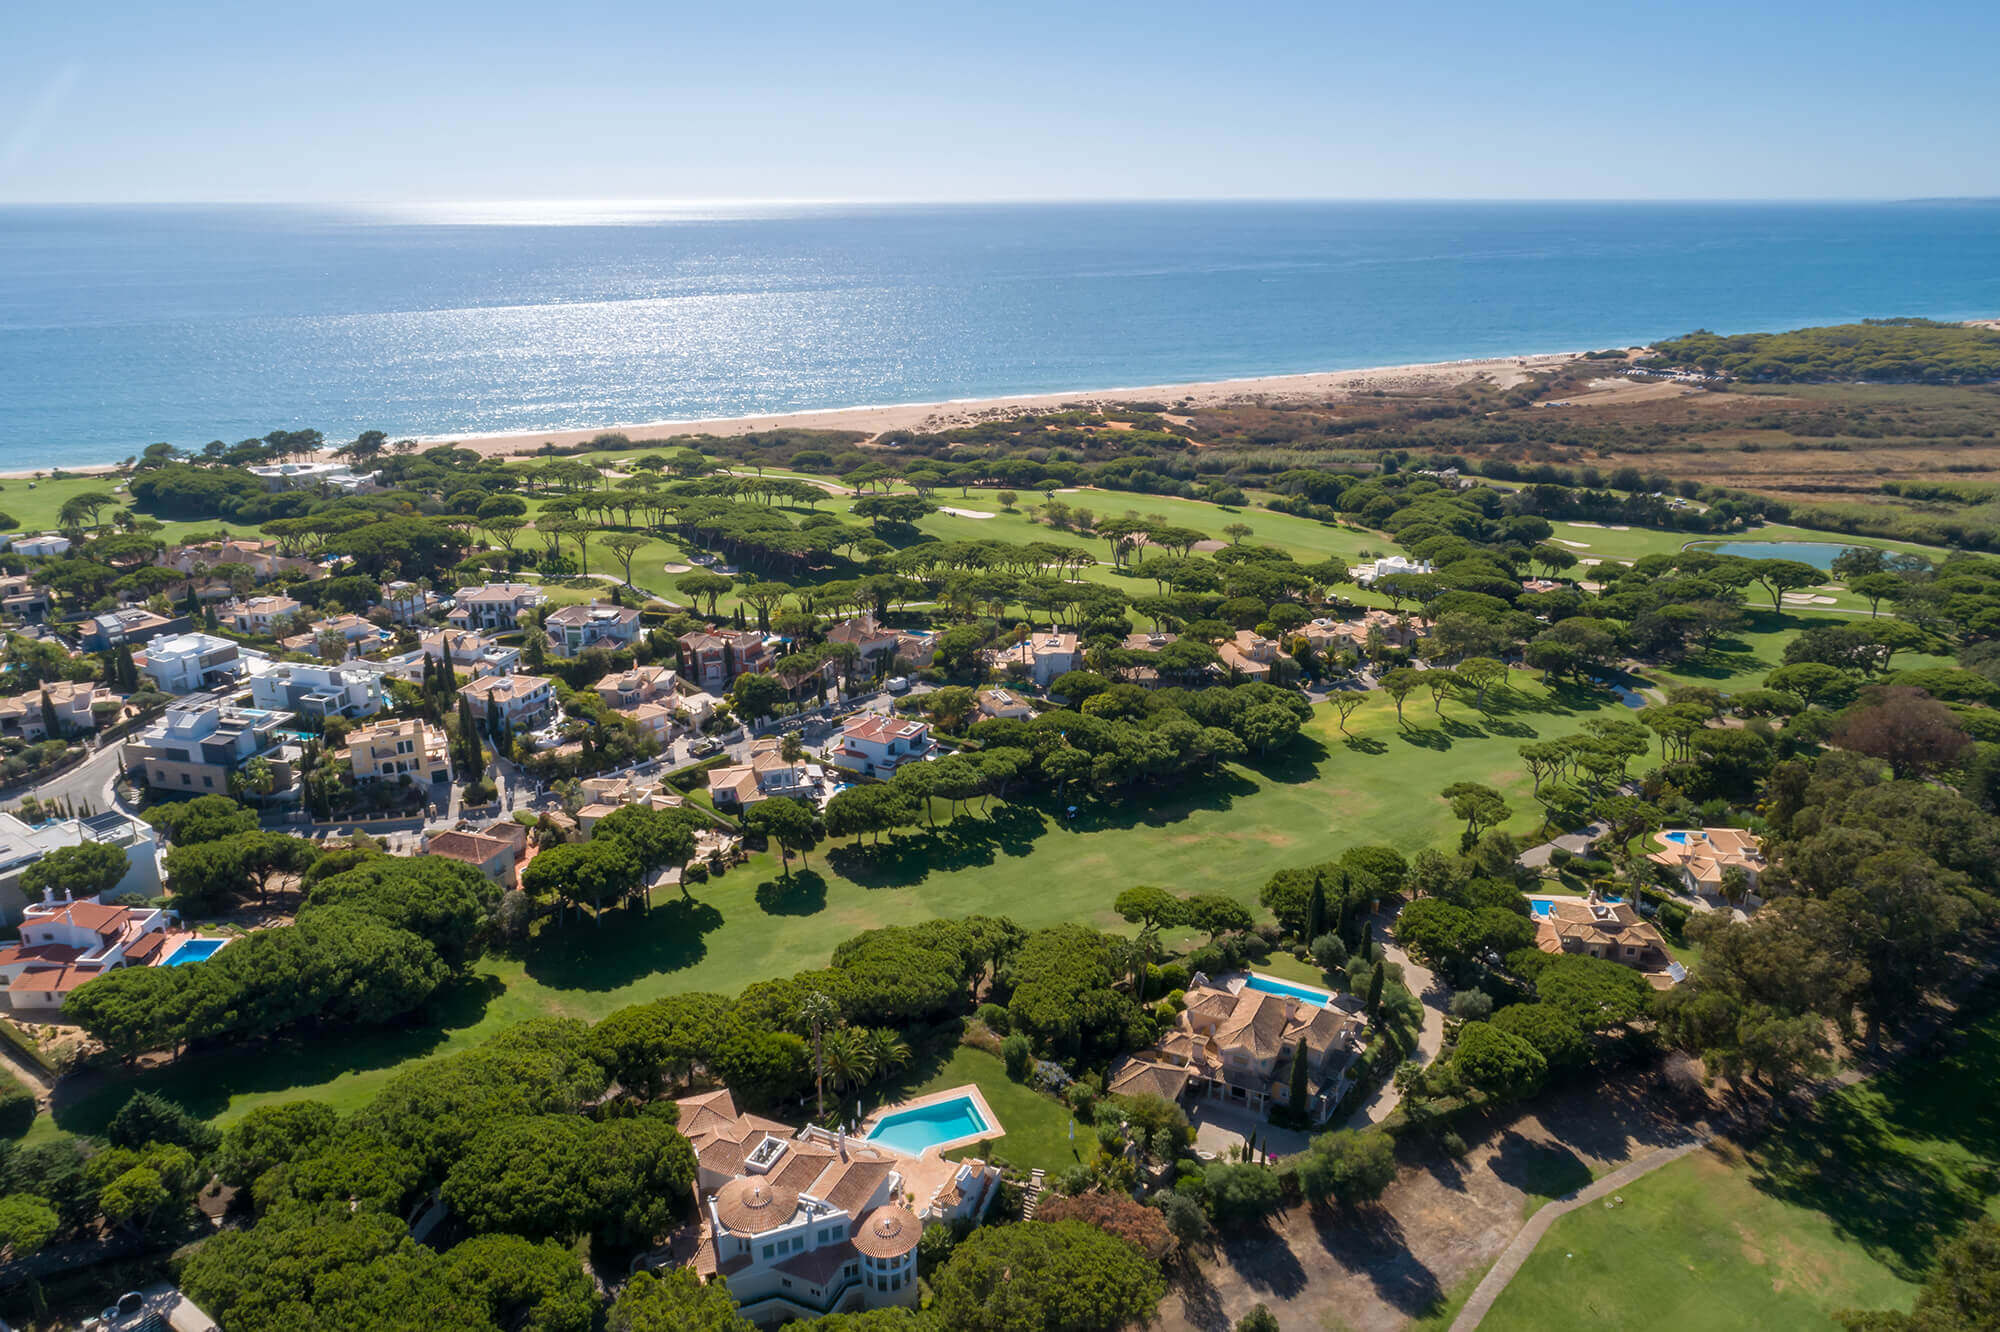 Do I need a passport to travel for Portugal Golf Holidays?